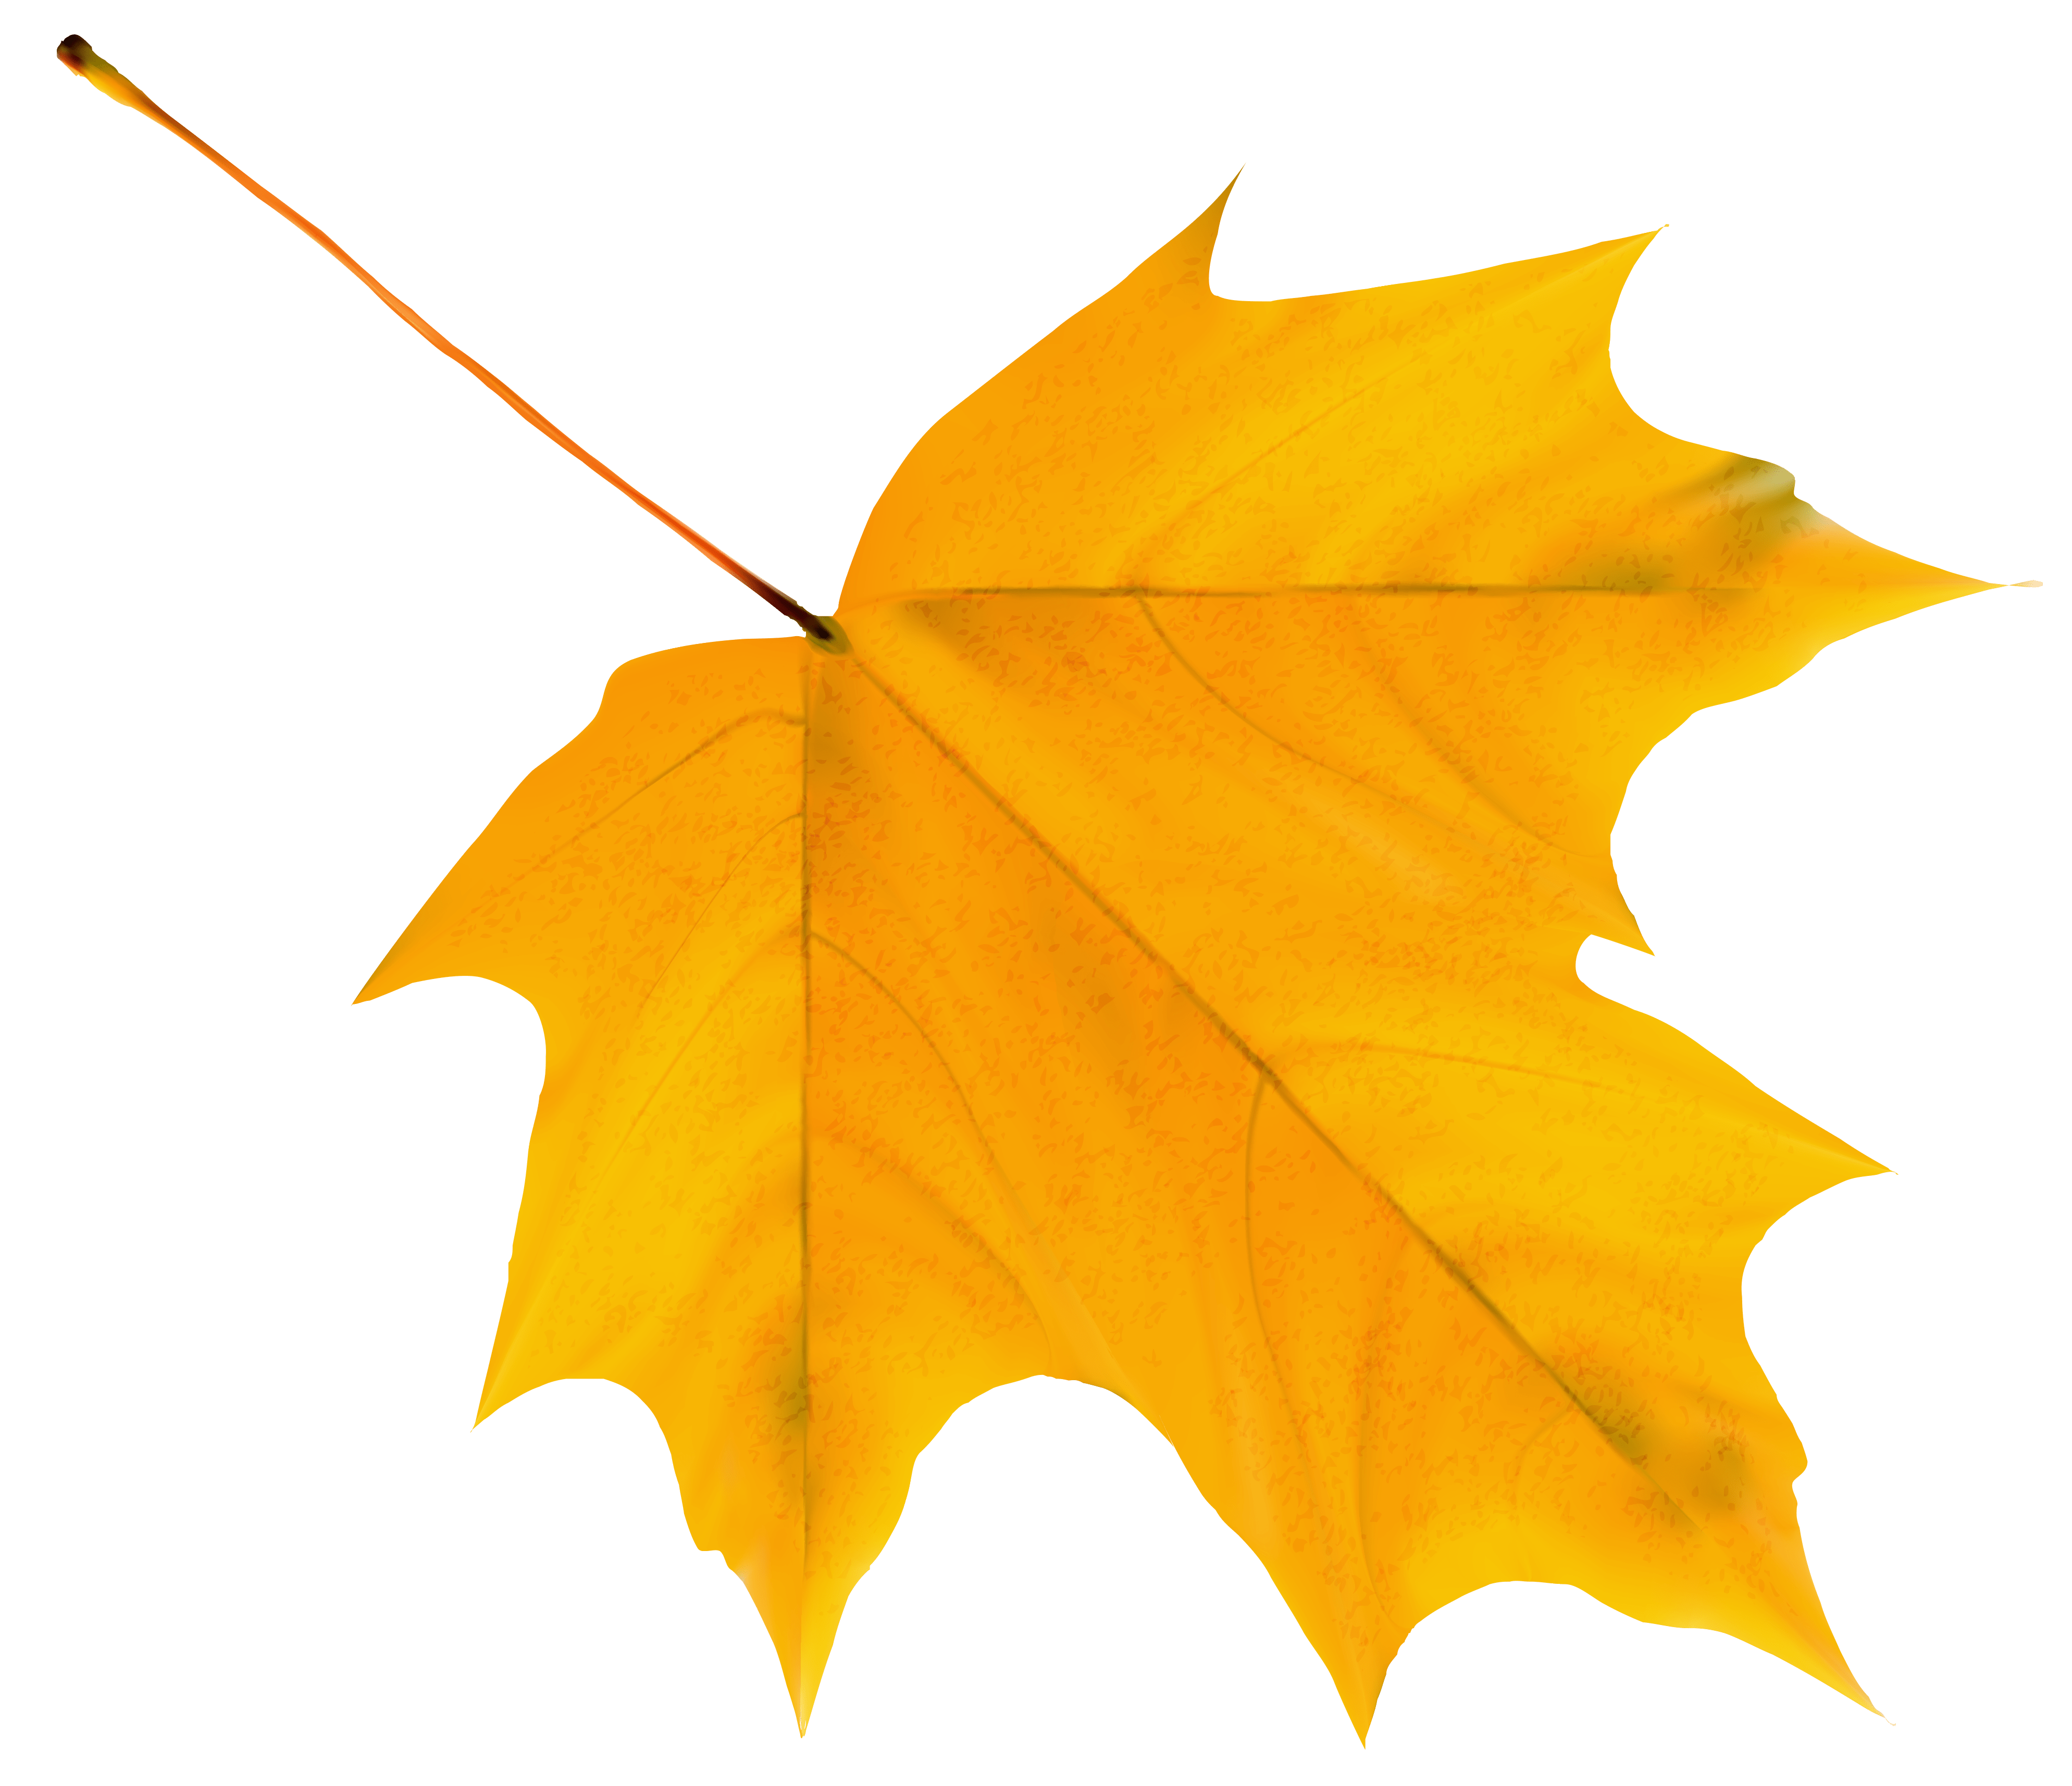 Birch Tree Fall Wallpaper Yellow Autumn Leaf Png Clipart Image Gallery